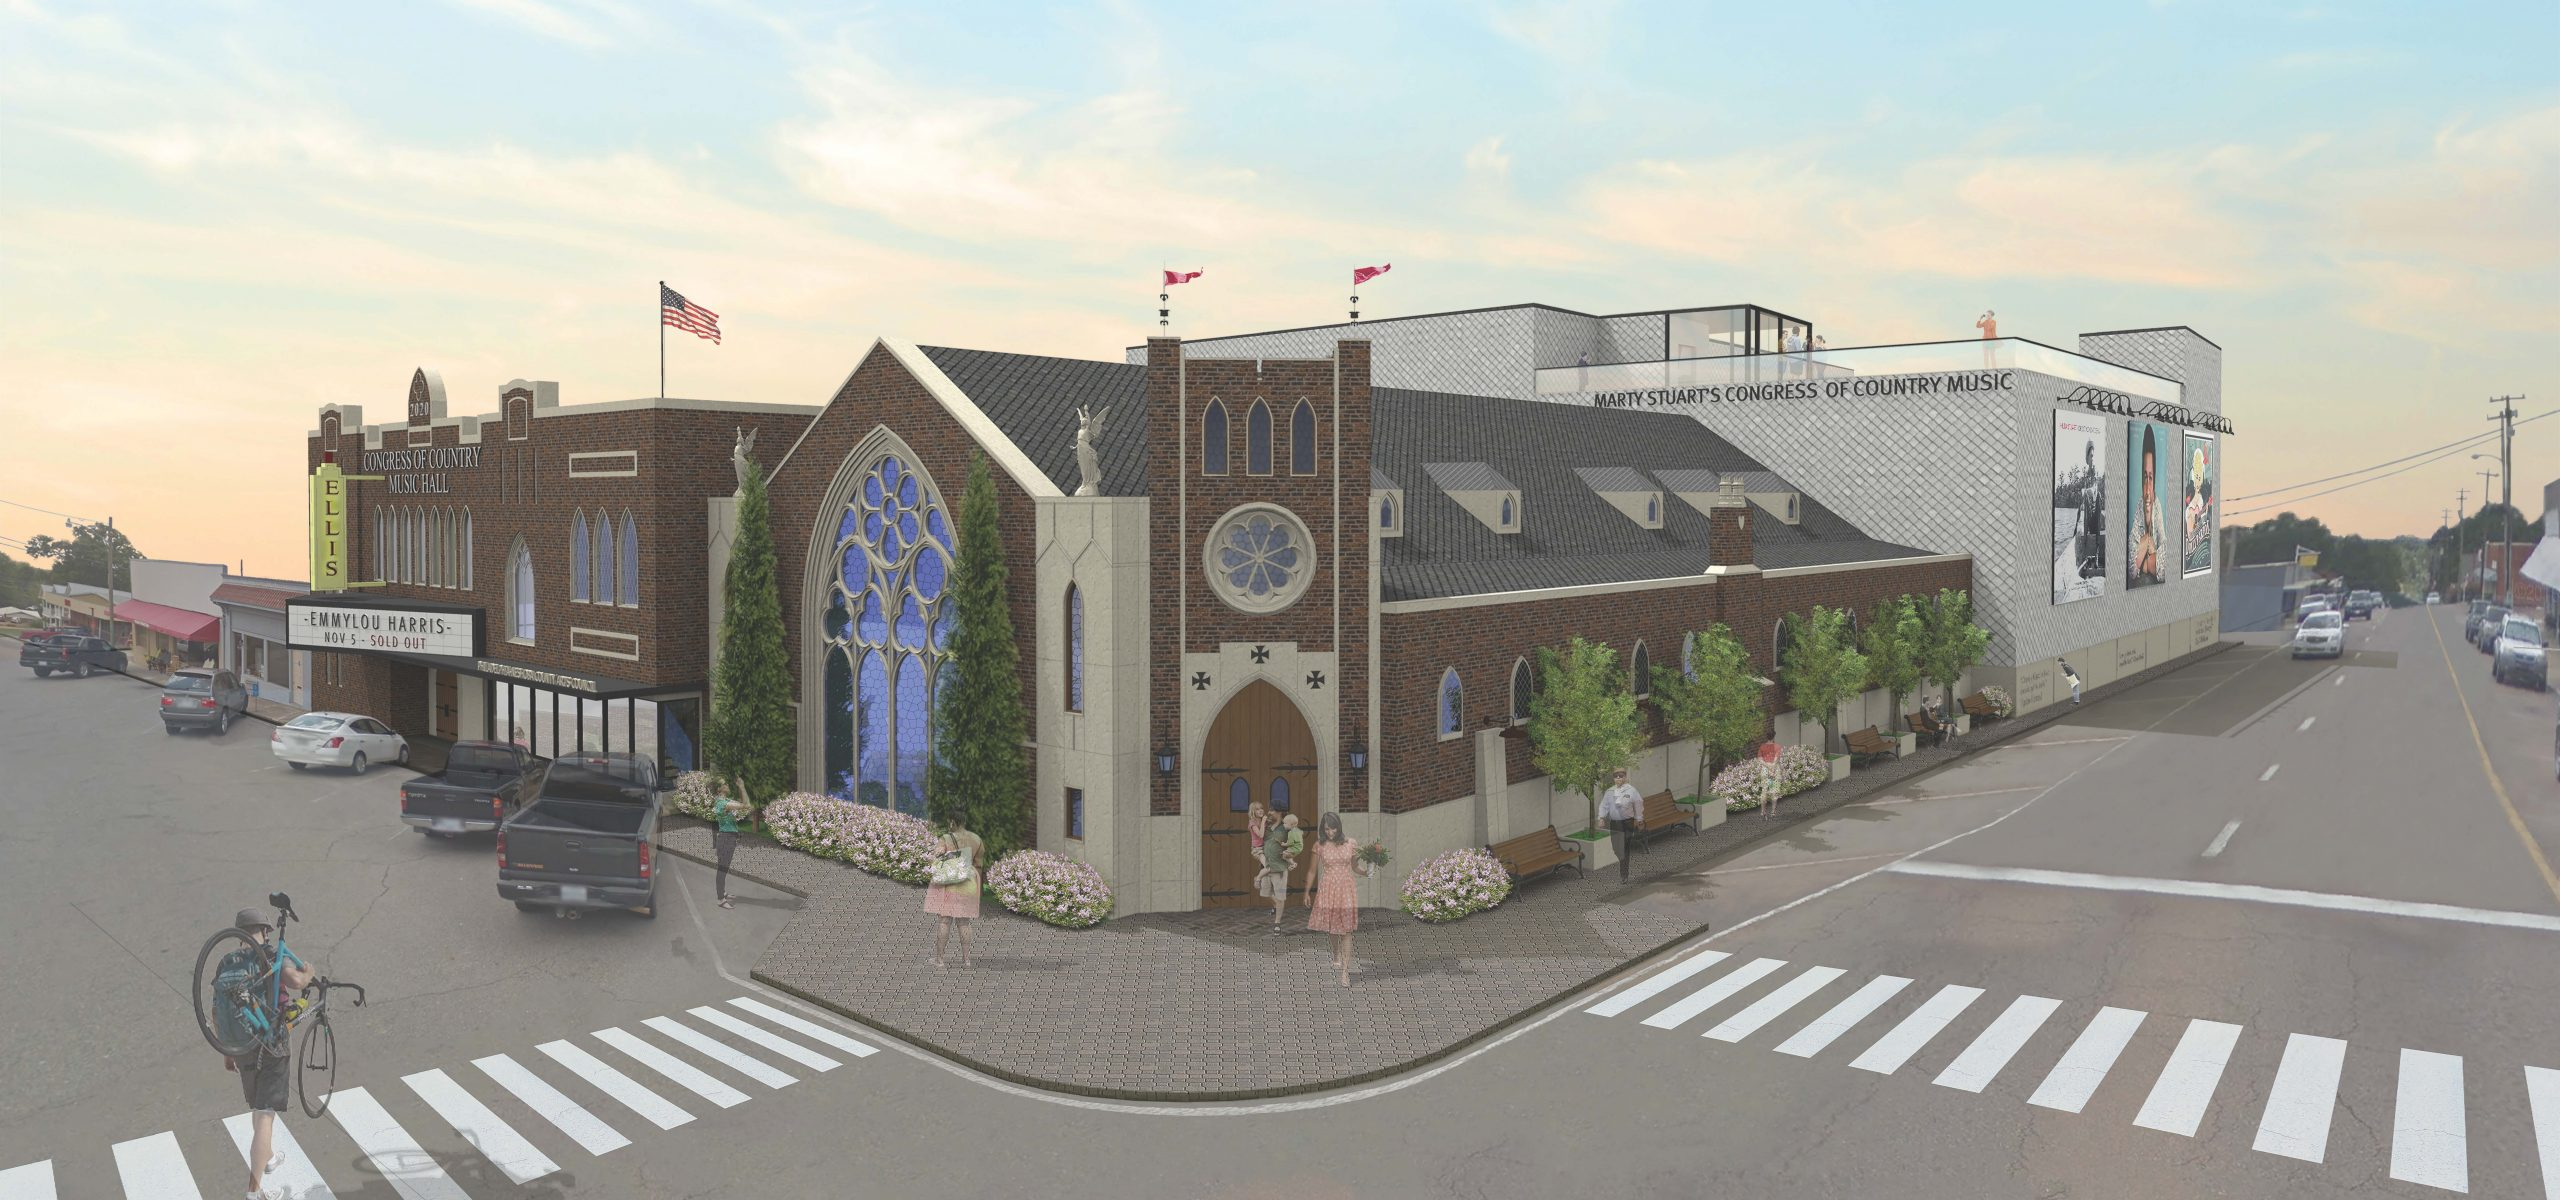 congress of country music exterior rendering